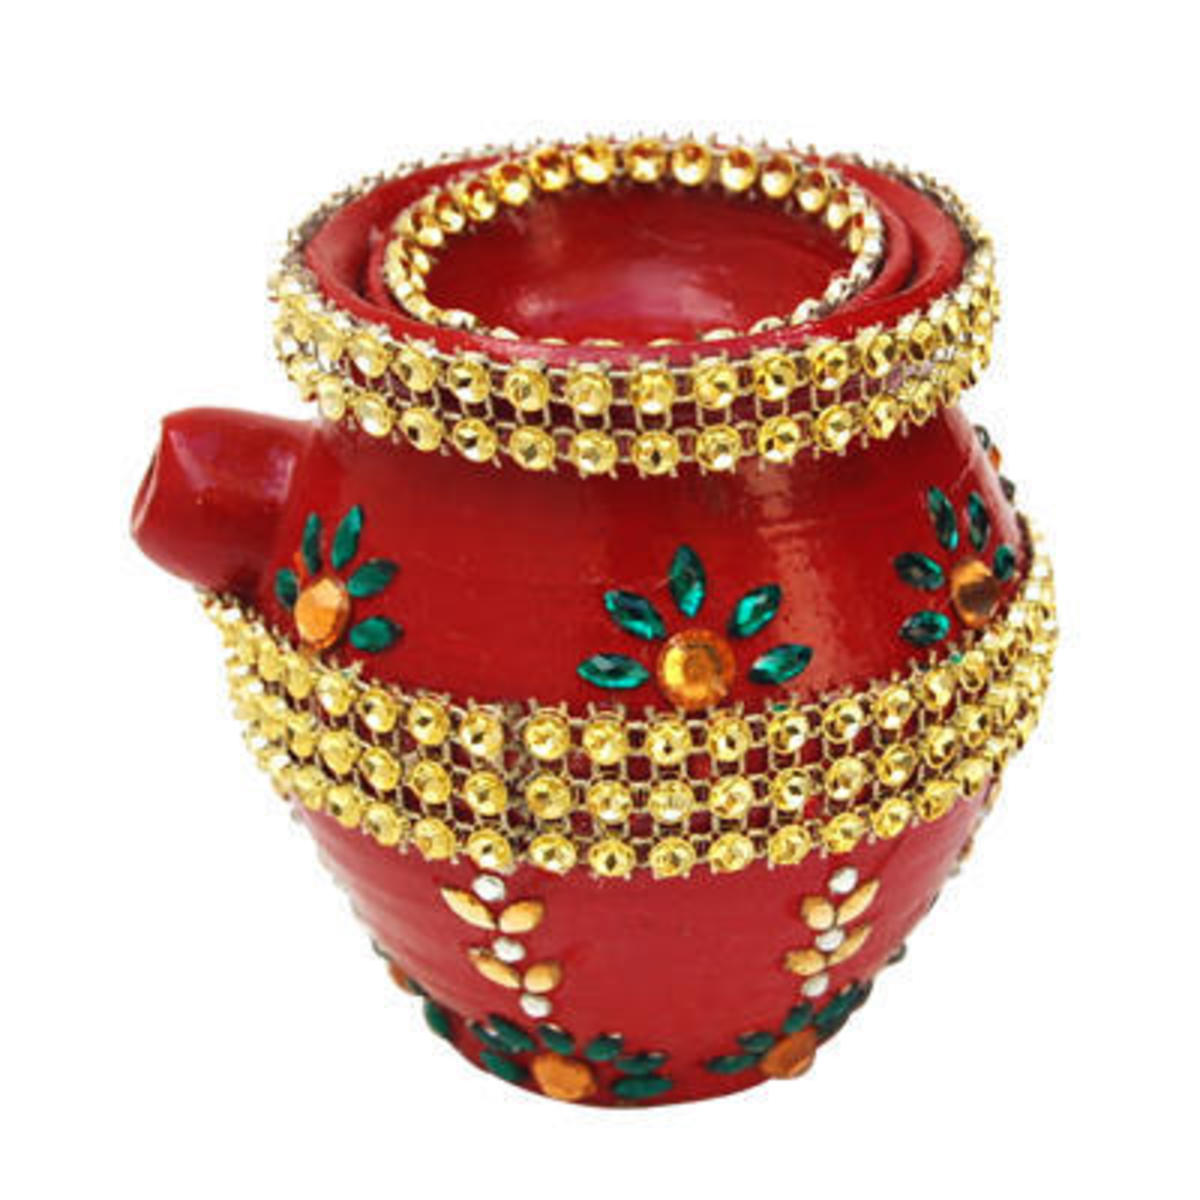 Example of a Kundan Karwa for Karwa Chauth Source:Indian Gift Portal